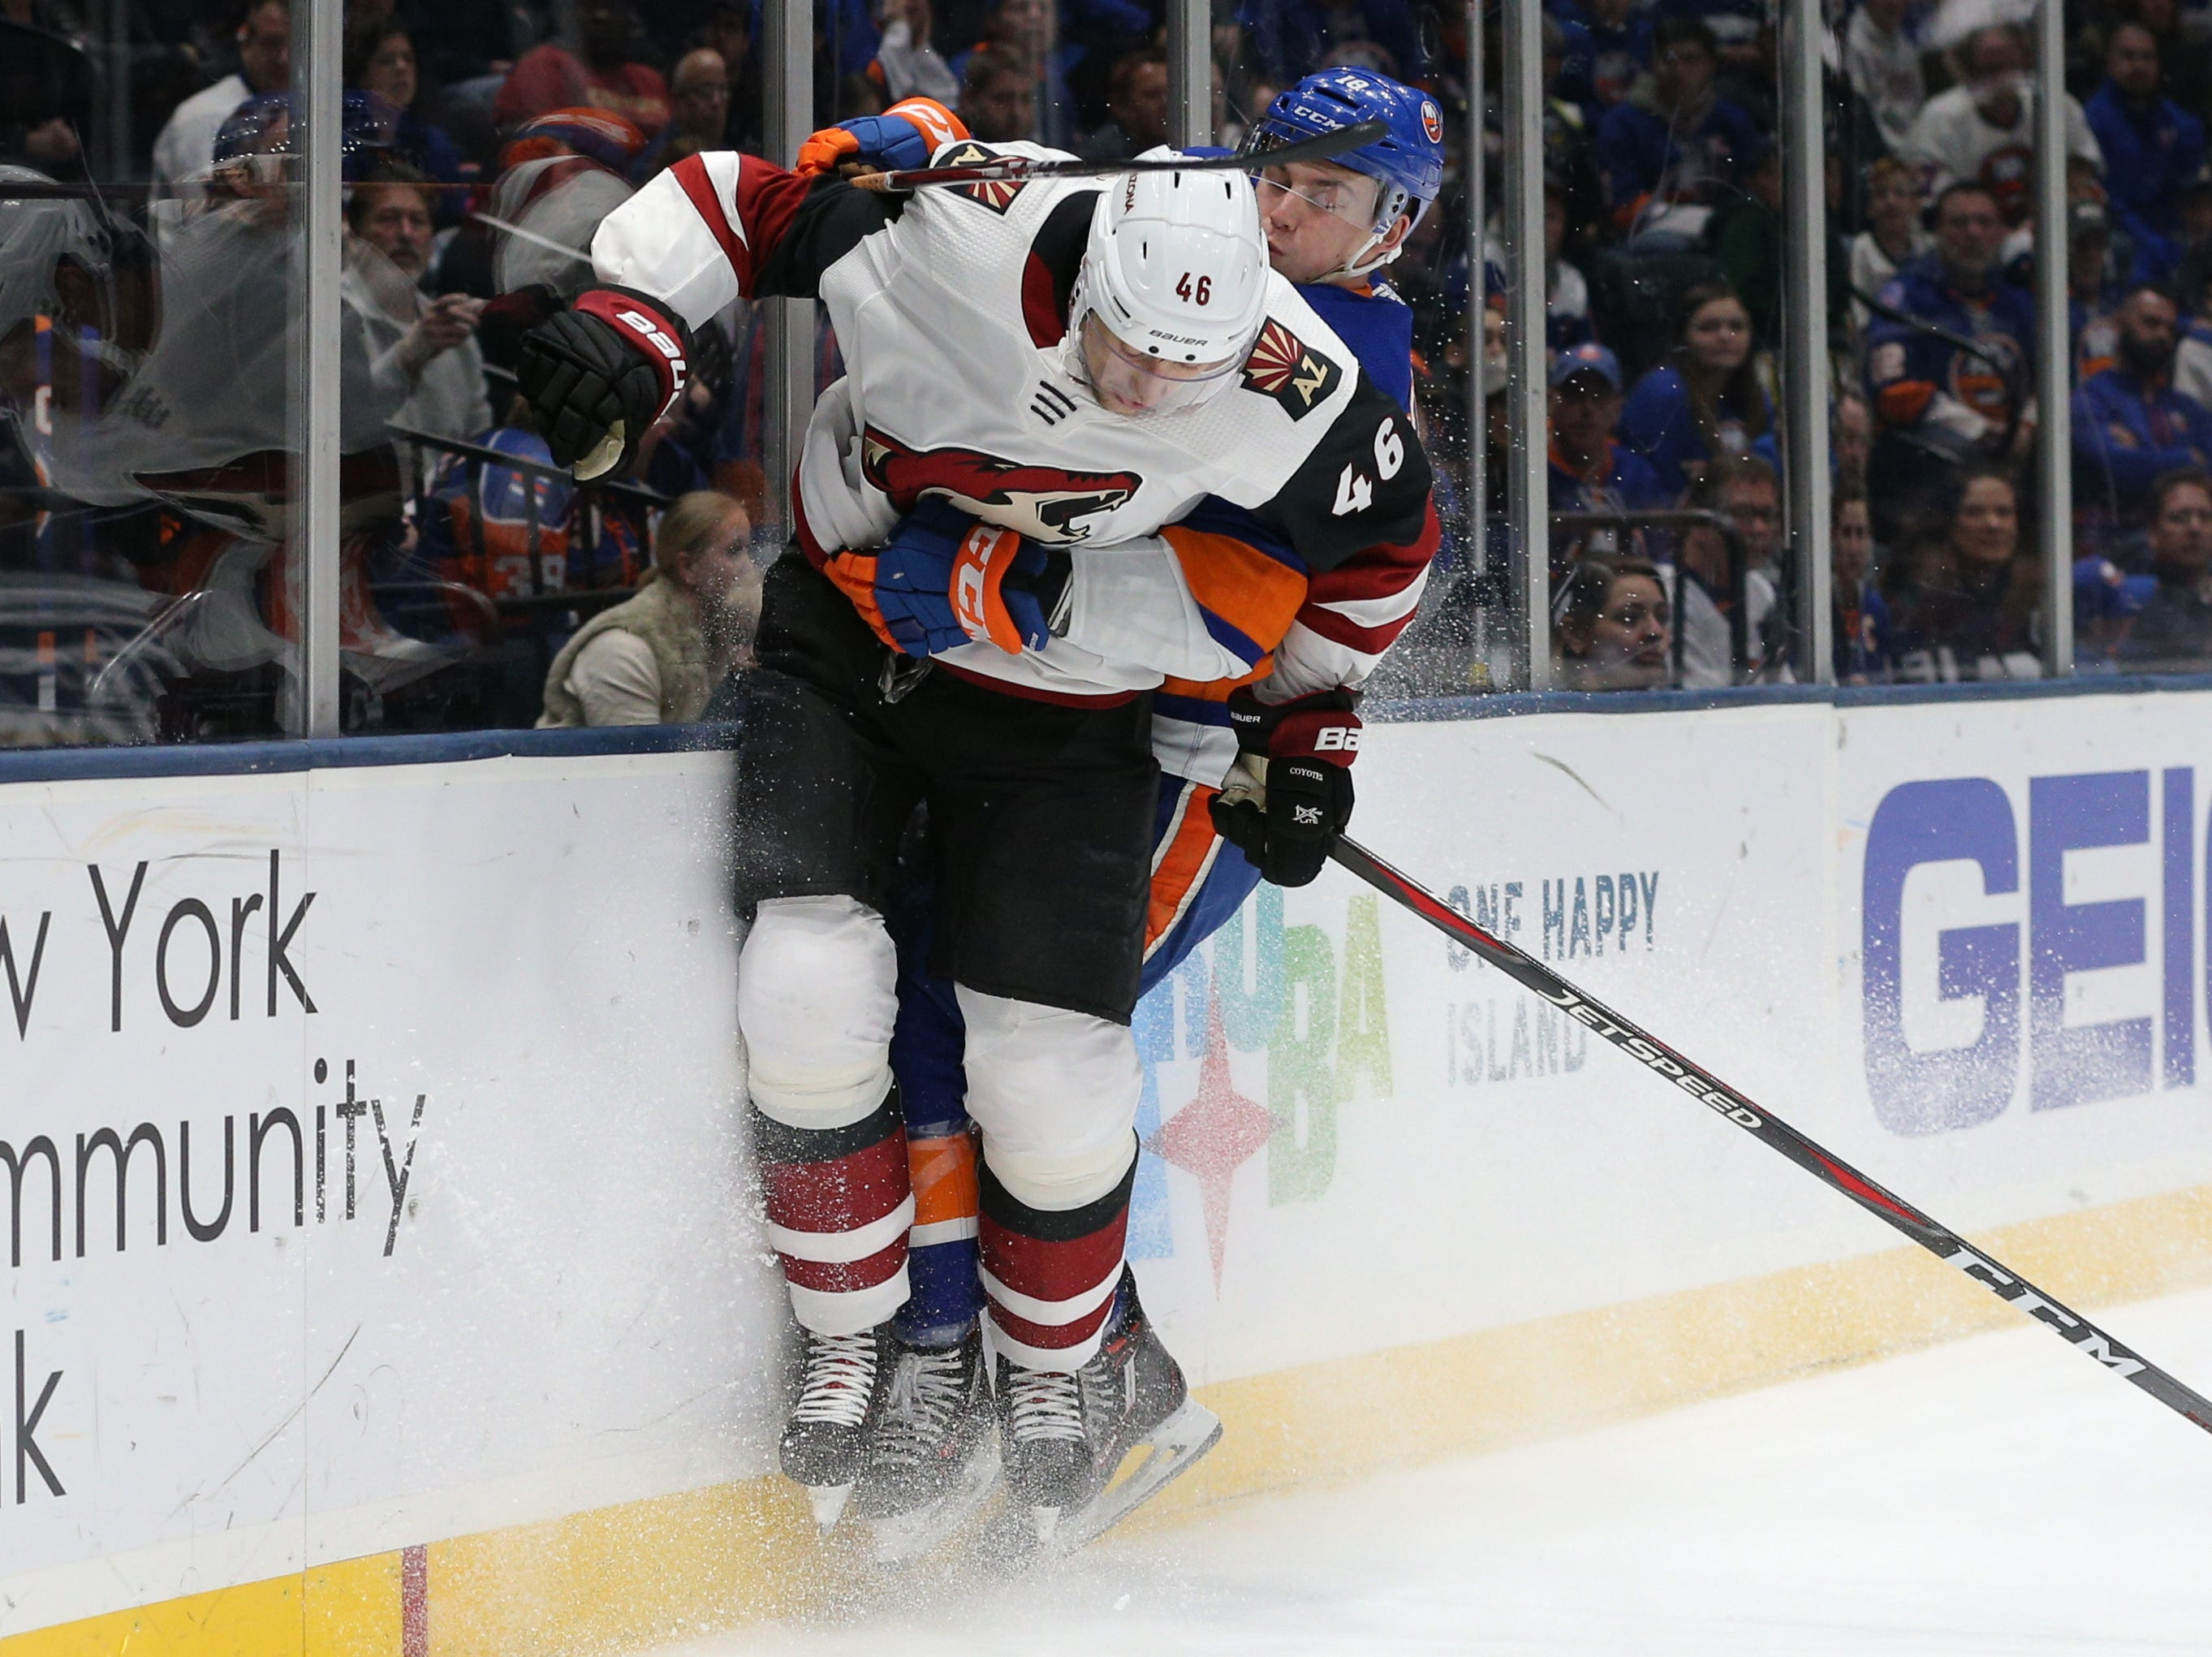 Mar 24, 2019; Uniondale, NY, USA; Arizona Coyotes defenseman Ilya Lyubushkin (46) and New York Islanders left wing Anthony Beauvillier (18) hit the boards during the second period at Nassau Veterans Memorial Coliseum. Mandatory Credit: Brad Penner-USA TODAY Sports